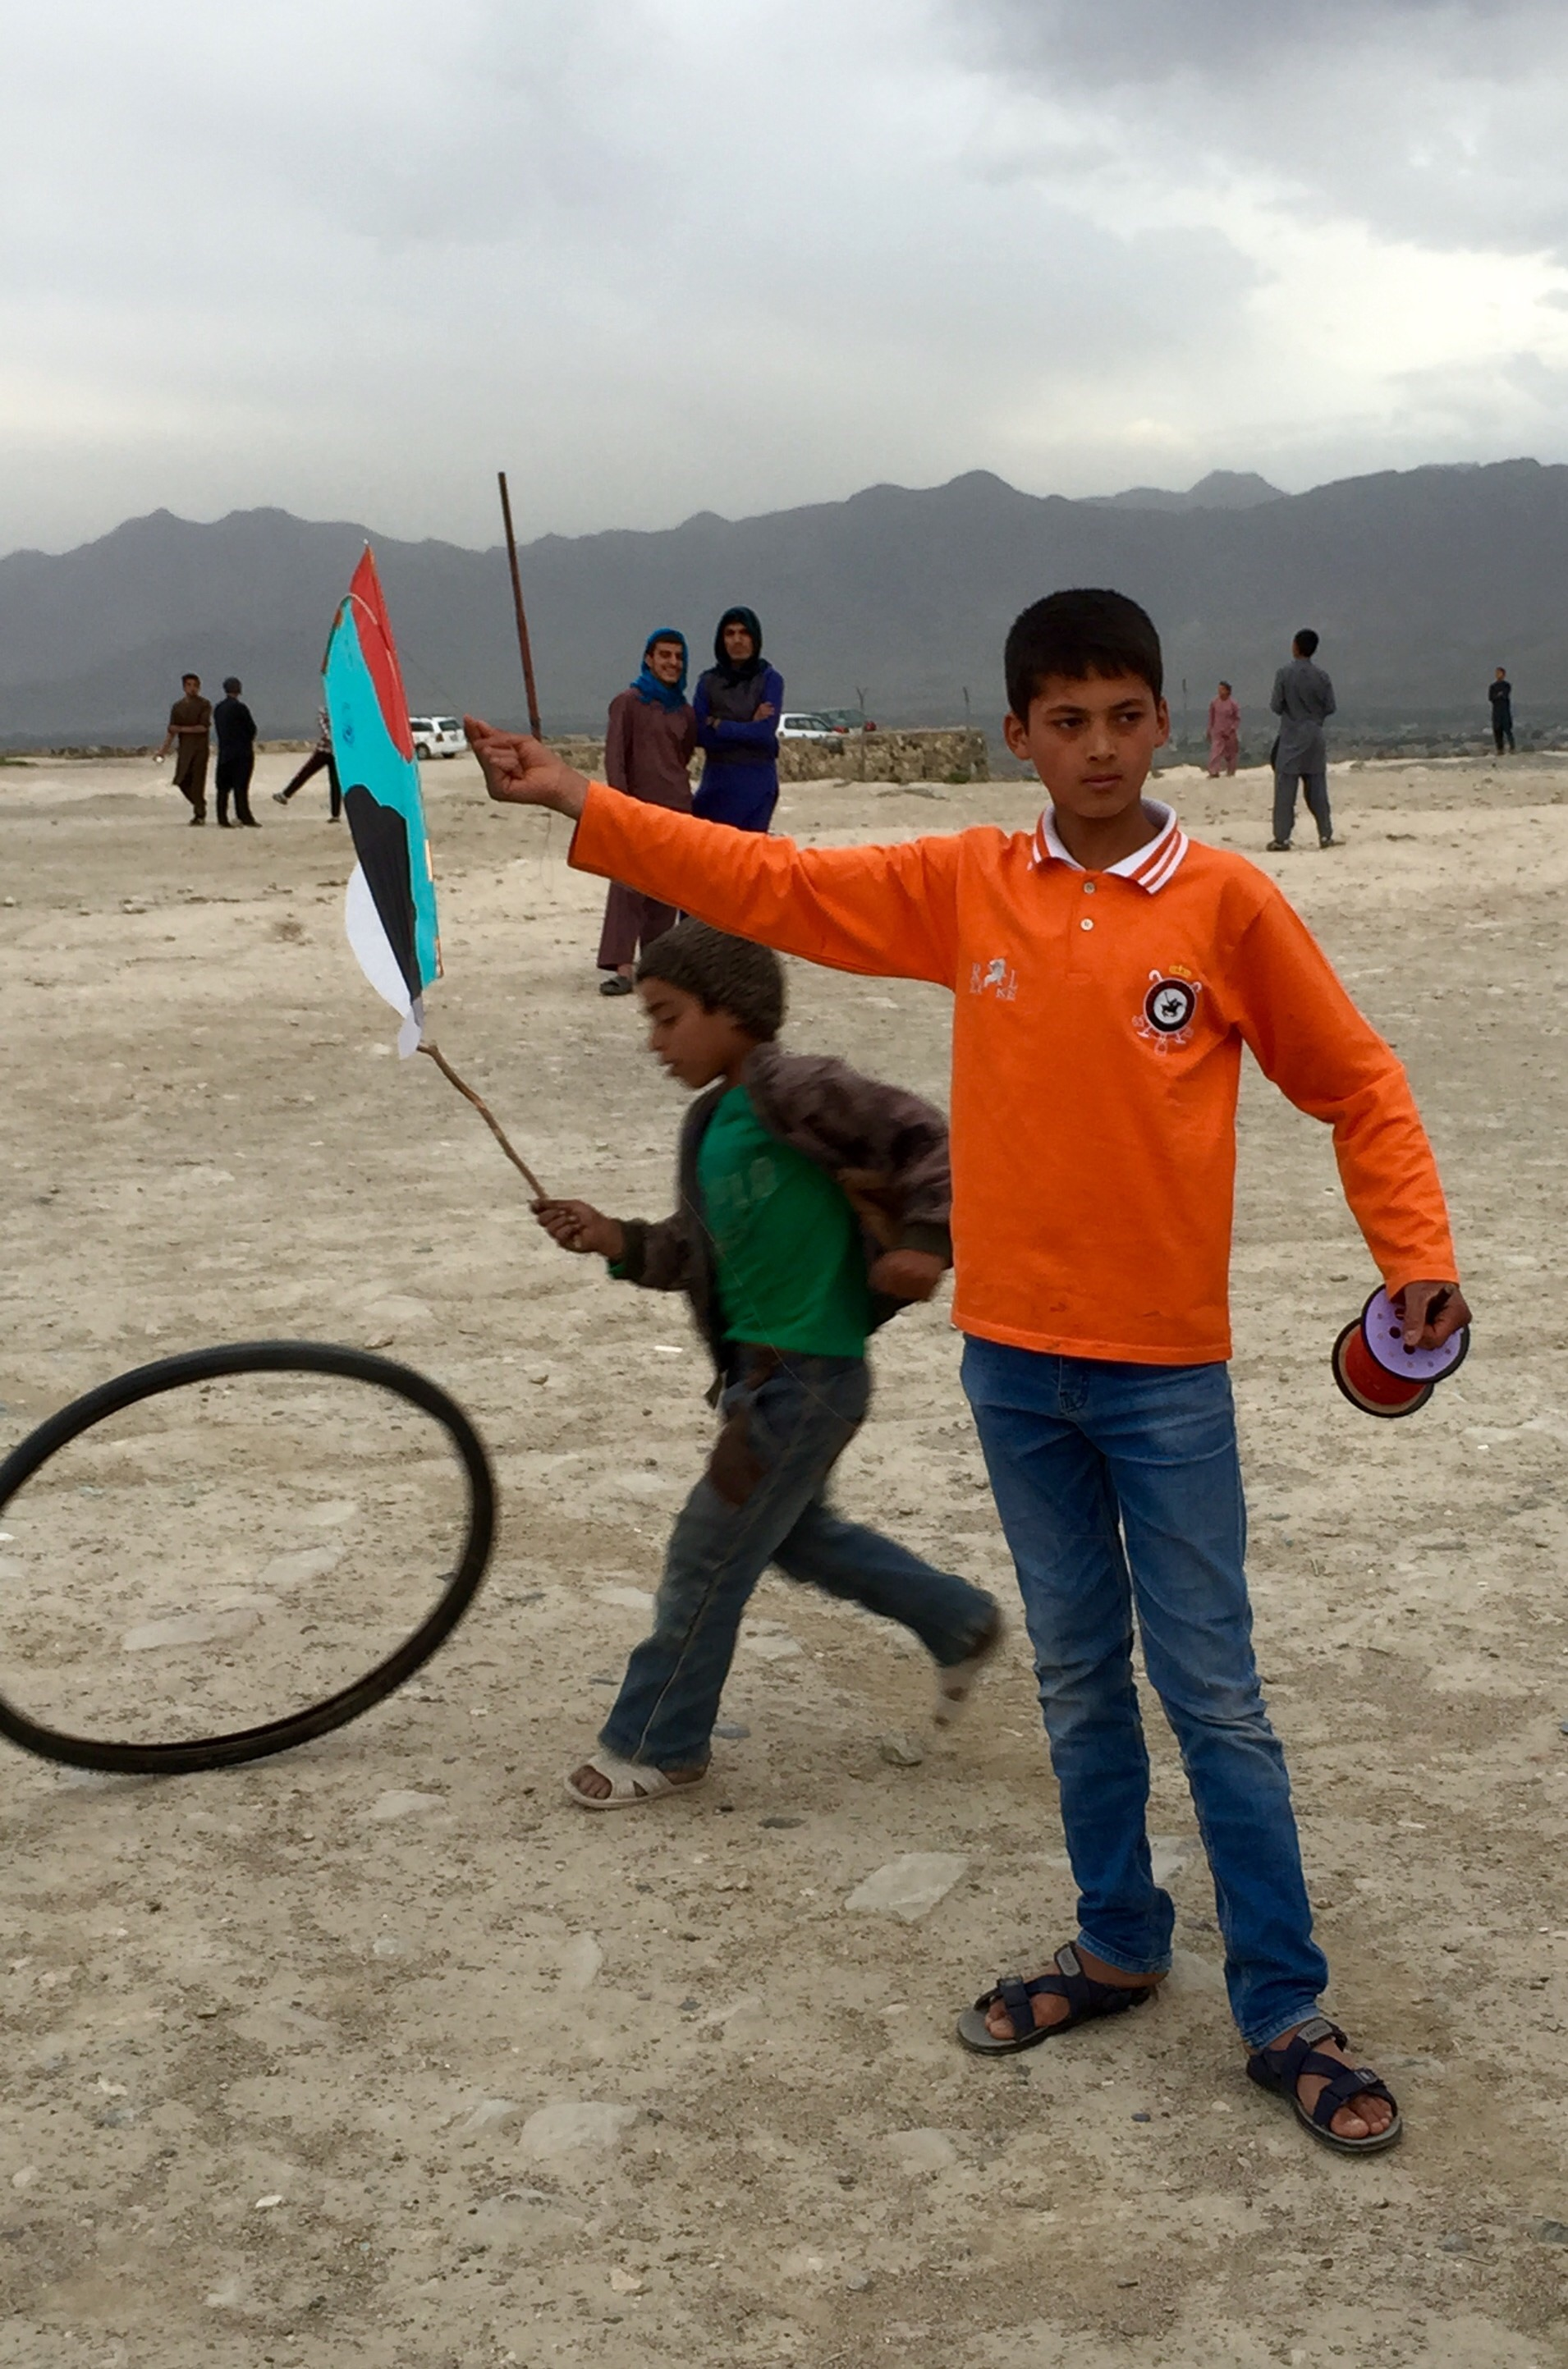 Kite flying Kabul